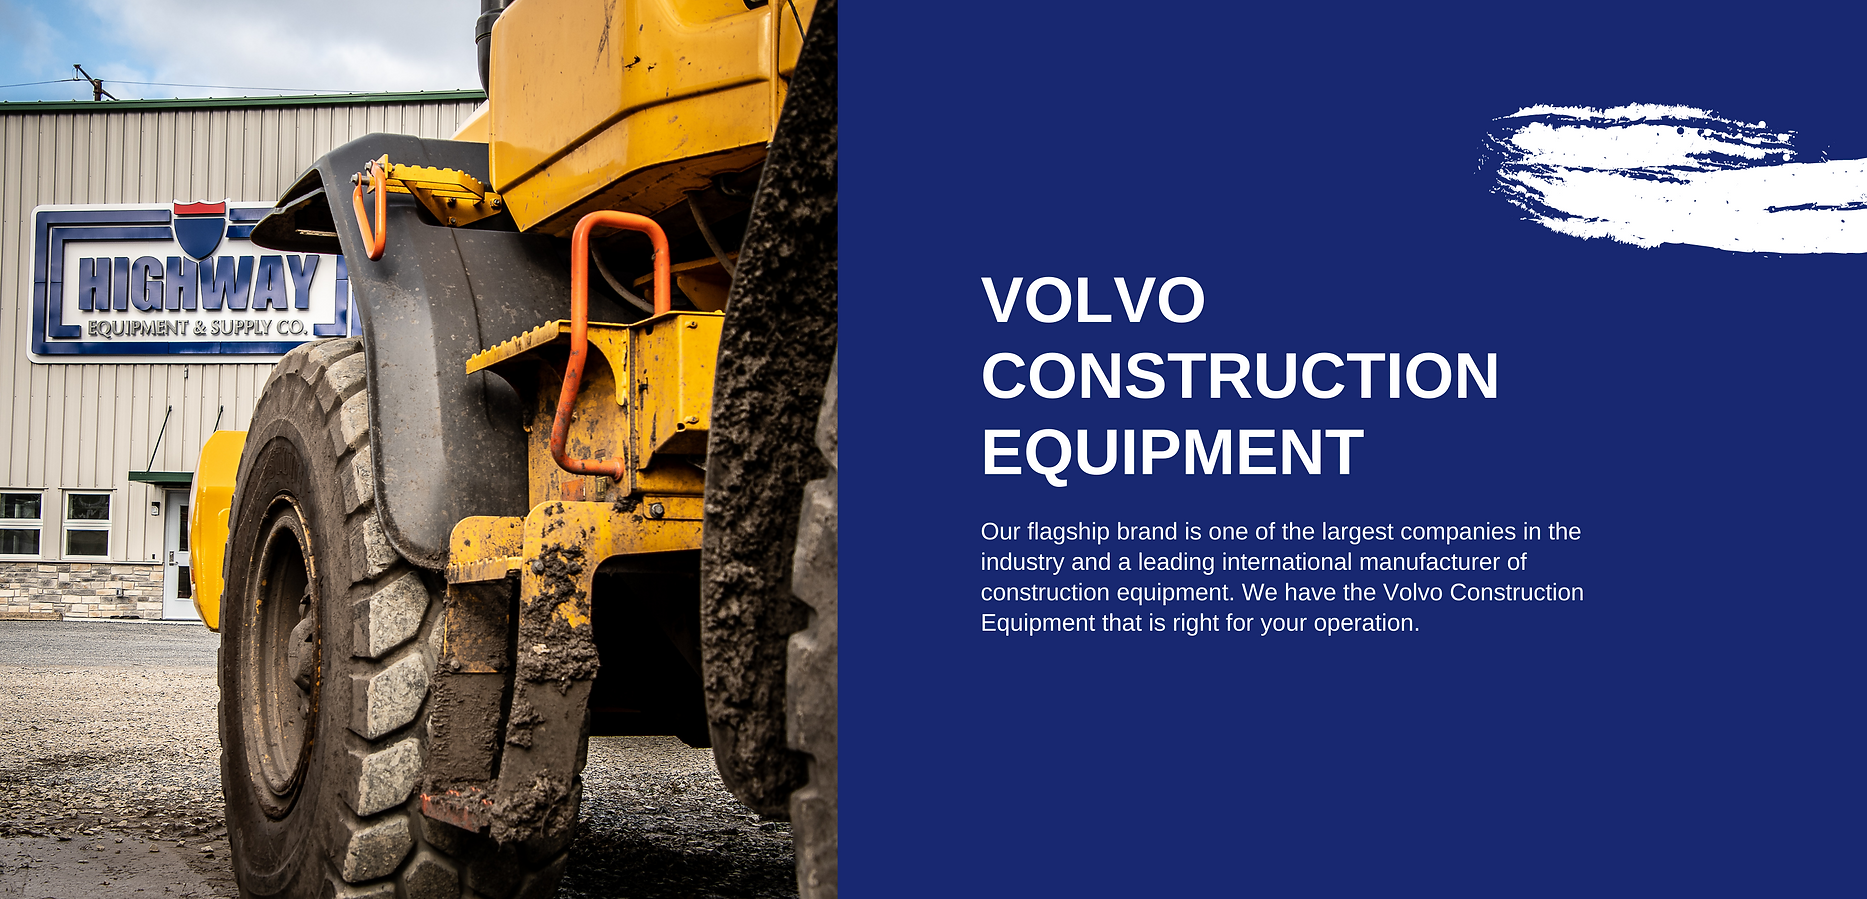 Volvo Construction Equipment at Highway